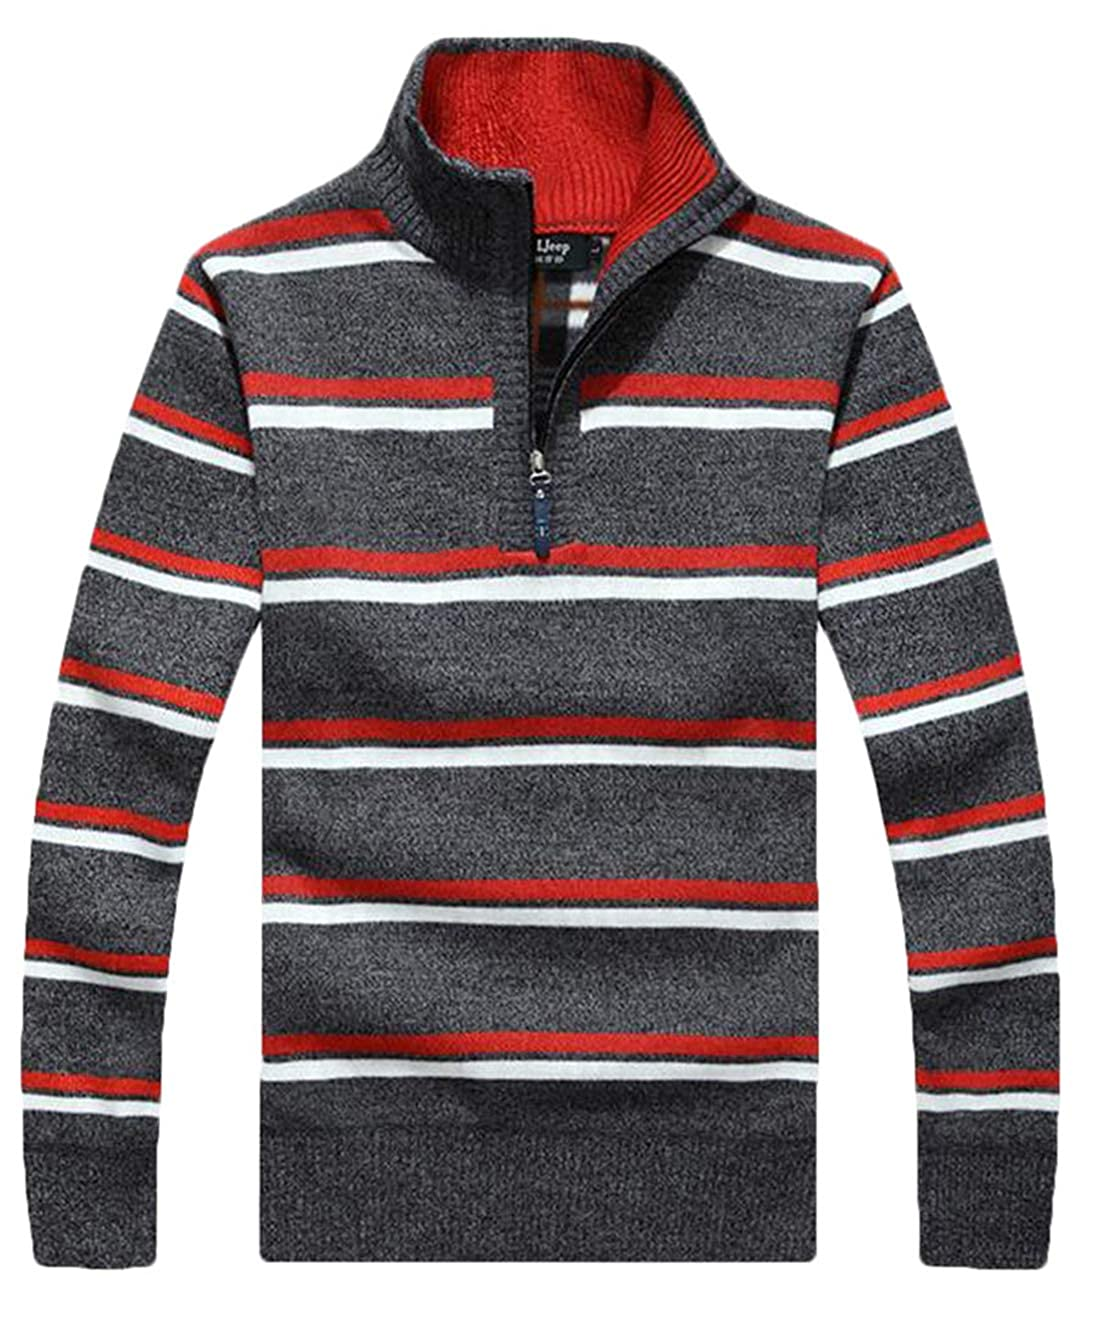 Hurrg Mens Striped 1//4 Zipper Pullover Fashion Warm Lined Stand Collar Sweater